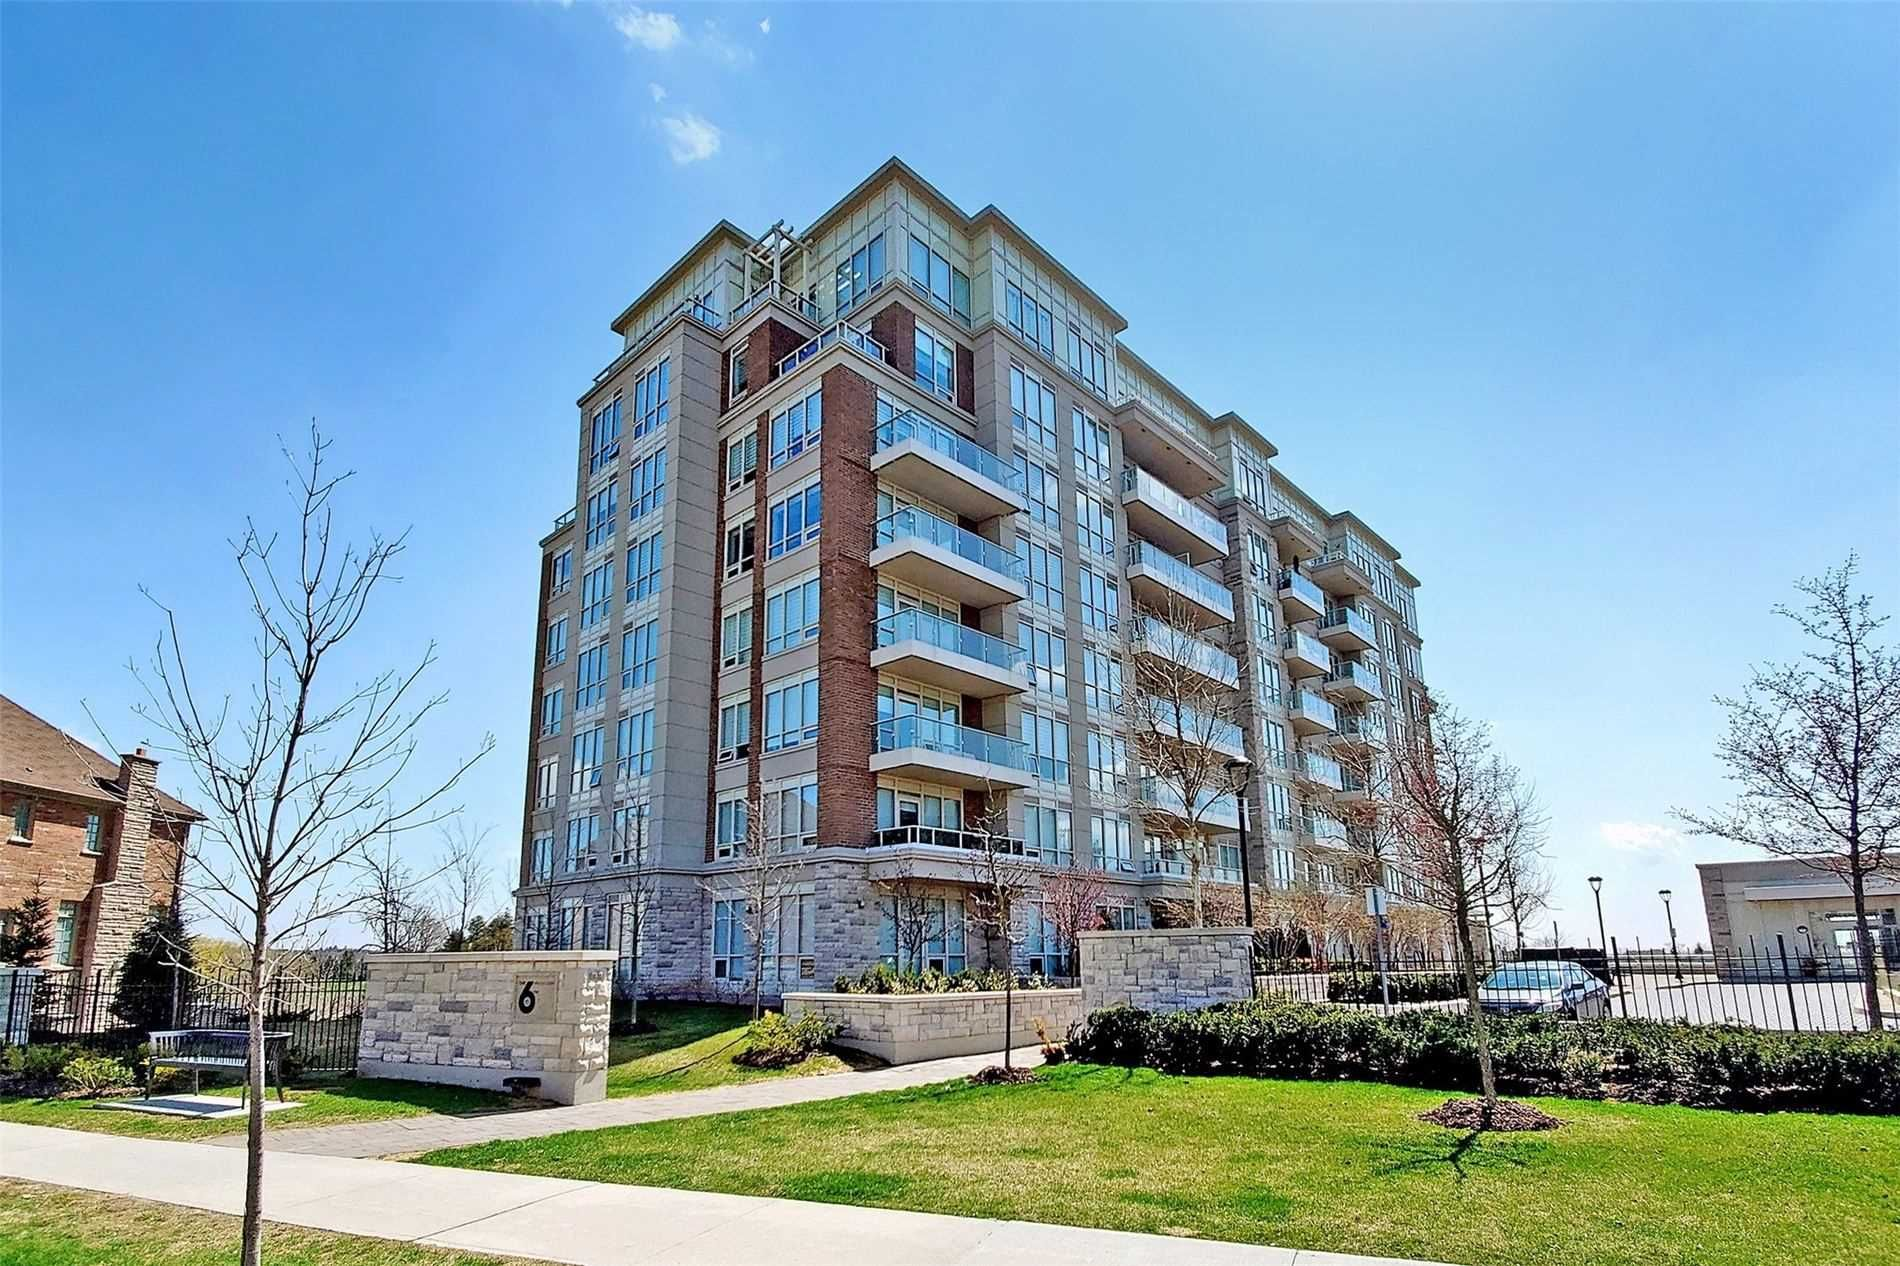 Main Photo: 812 15 Stollery Pond Crescent in Markham: Angus Glen Condo for sale : MLS®# N5280028